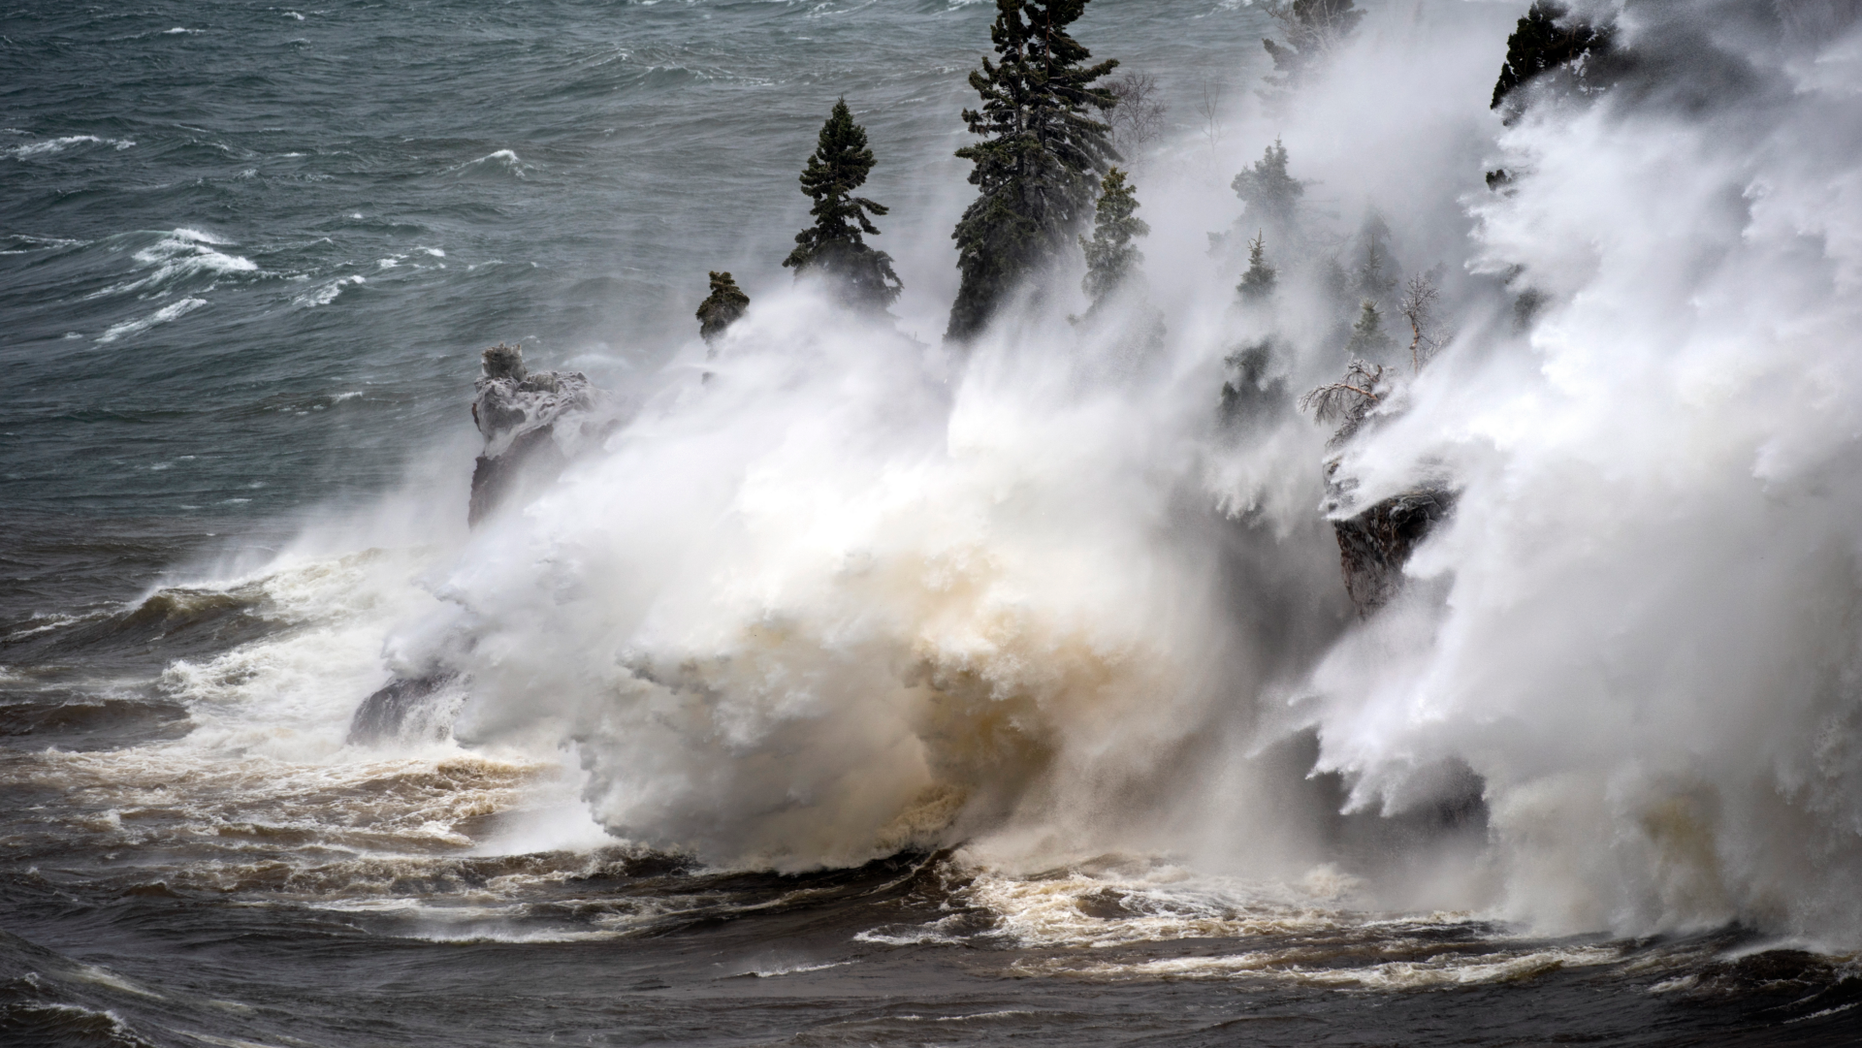 Waves pound the shoreline at Tettegouche State Park Thursday, April 11, 2019 at Silver Bay, Minn. Wind gusts were up to 50 milers per hour.  (Brian Peterson/Star Tribune via AP)